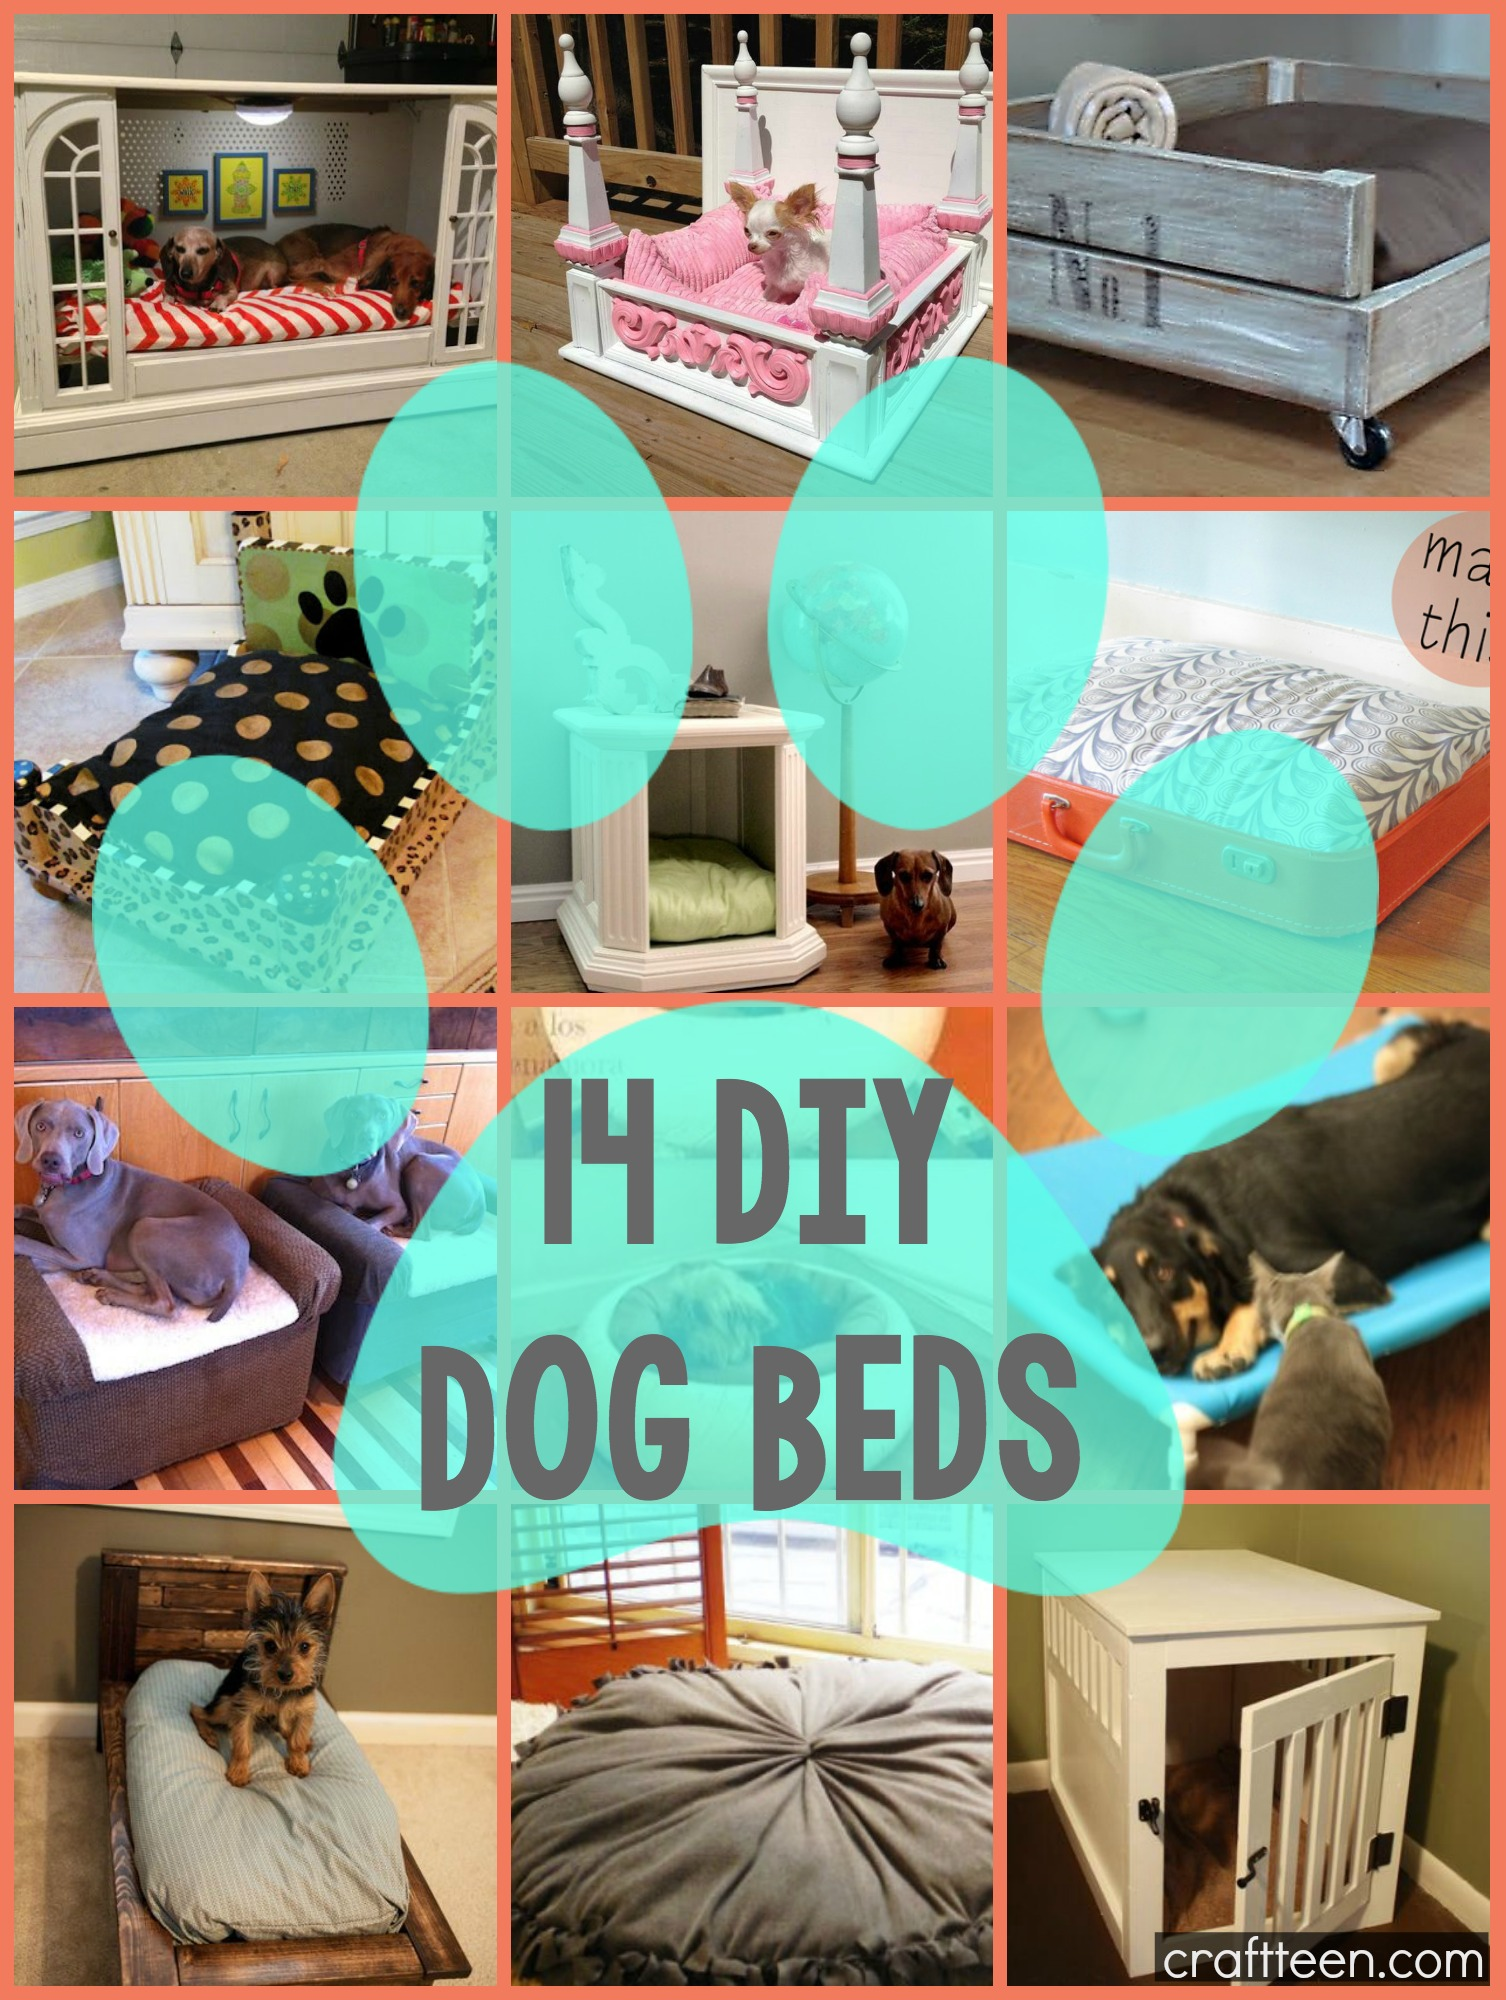 14 Diy Dog Beds